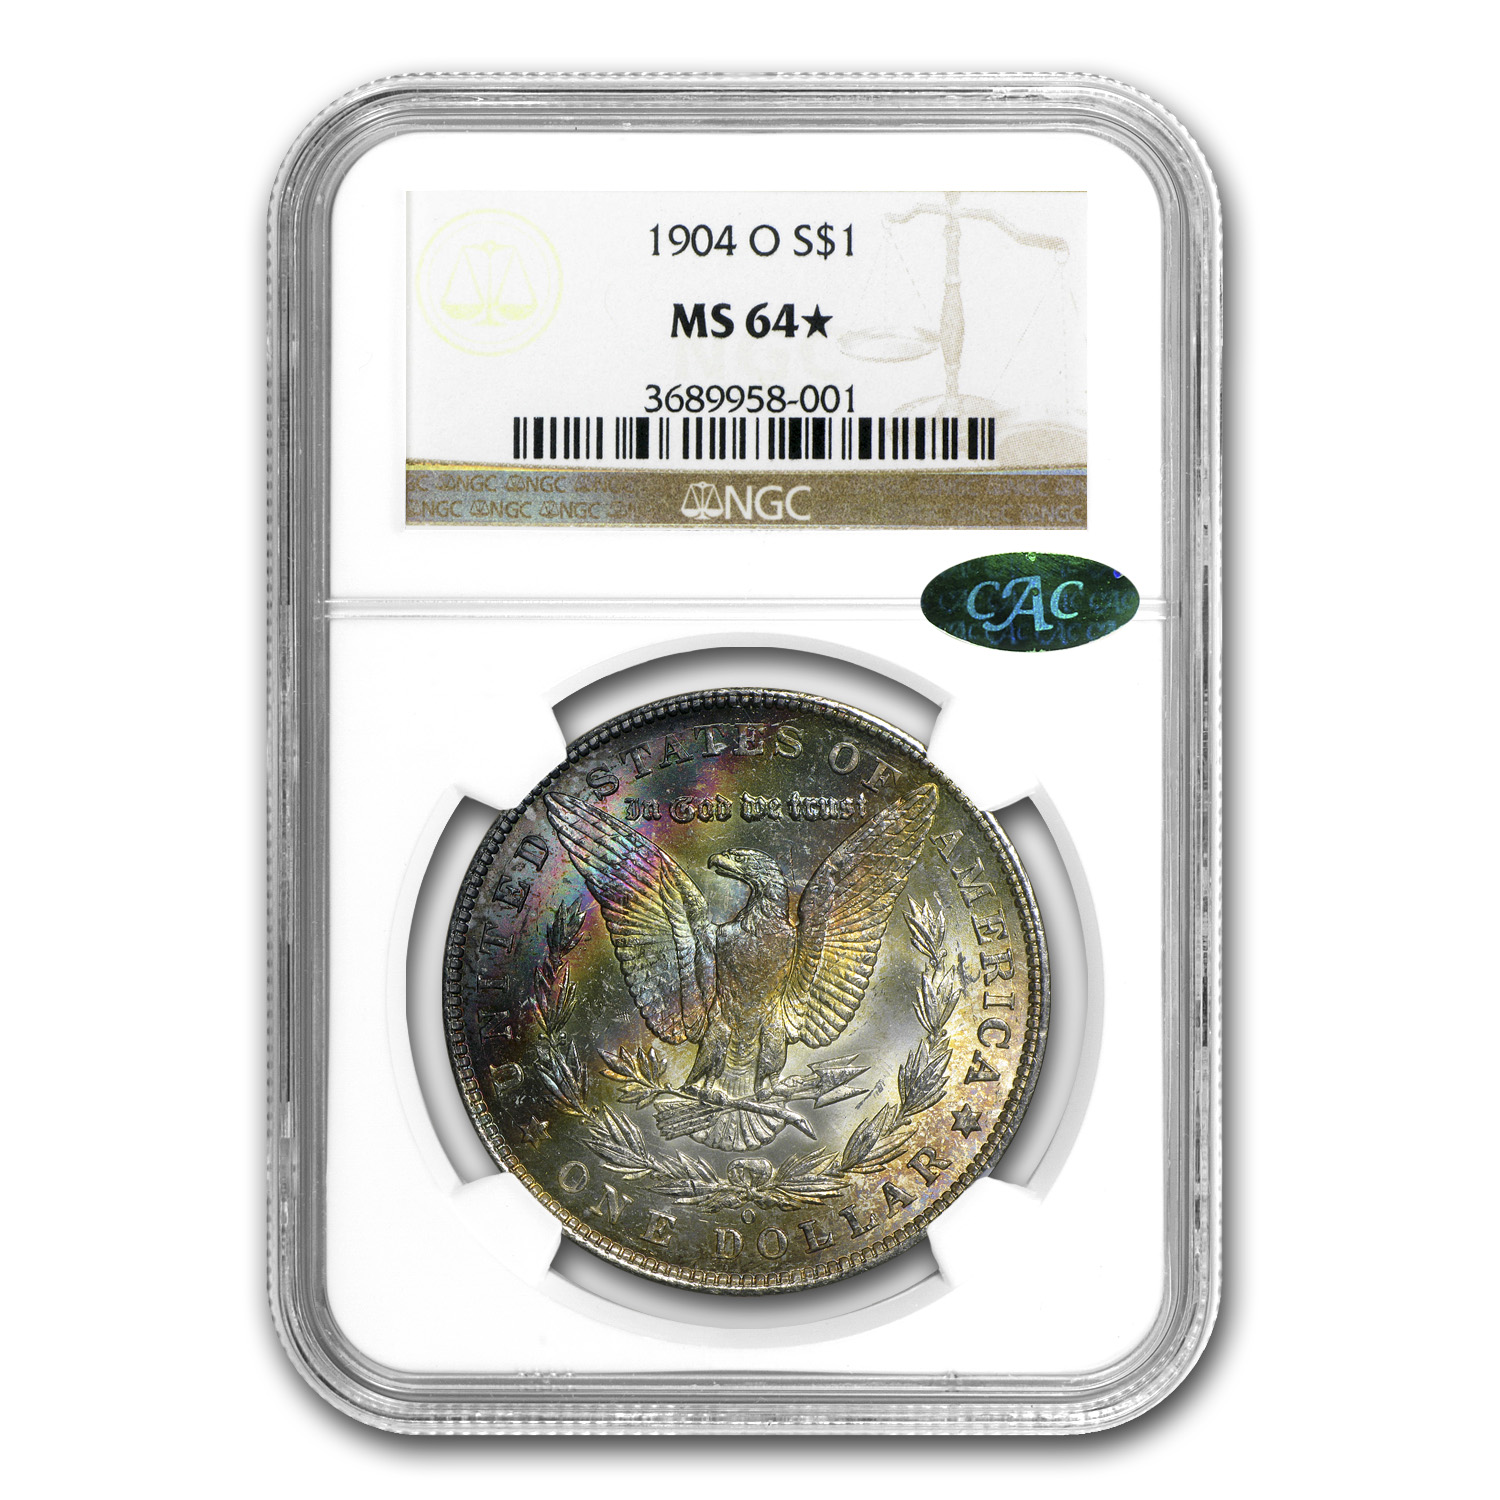 1904-O Morgan Dollar MS-64* Star NGC Beautiful Obverse Toning CAC